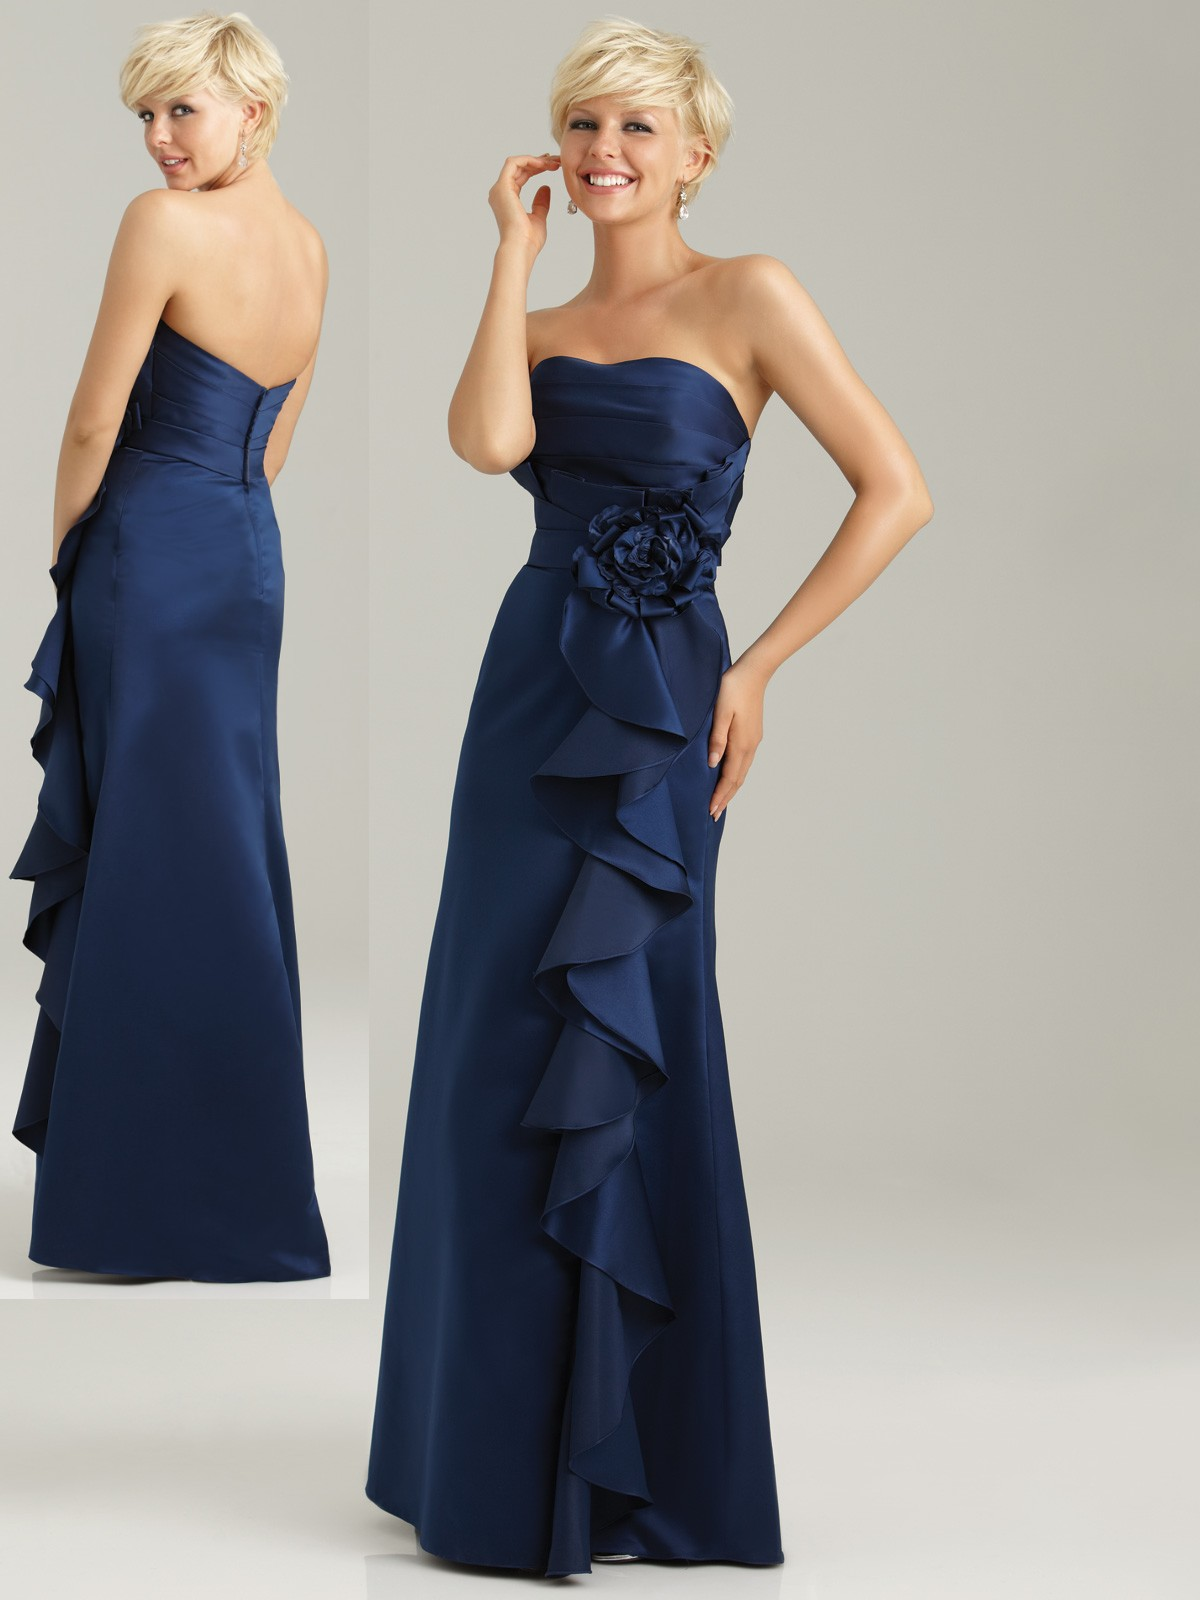 navy blue ruffle bridesmaid dress